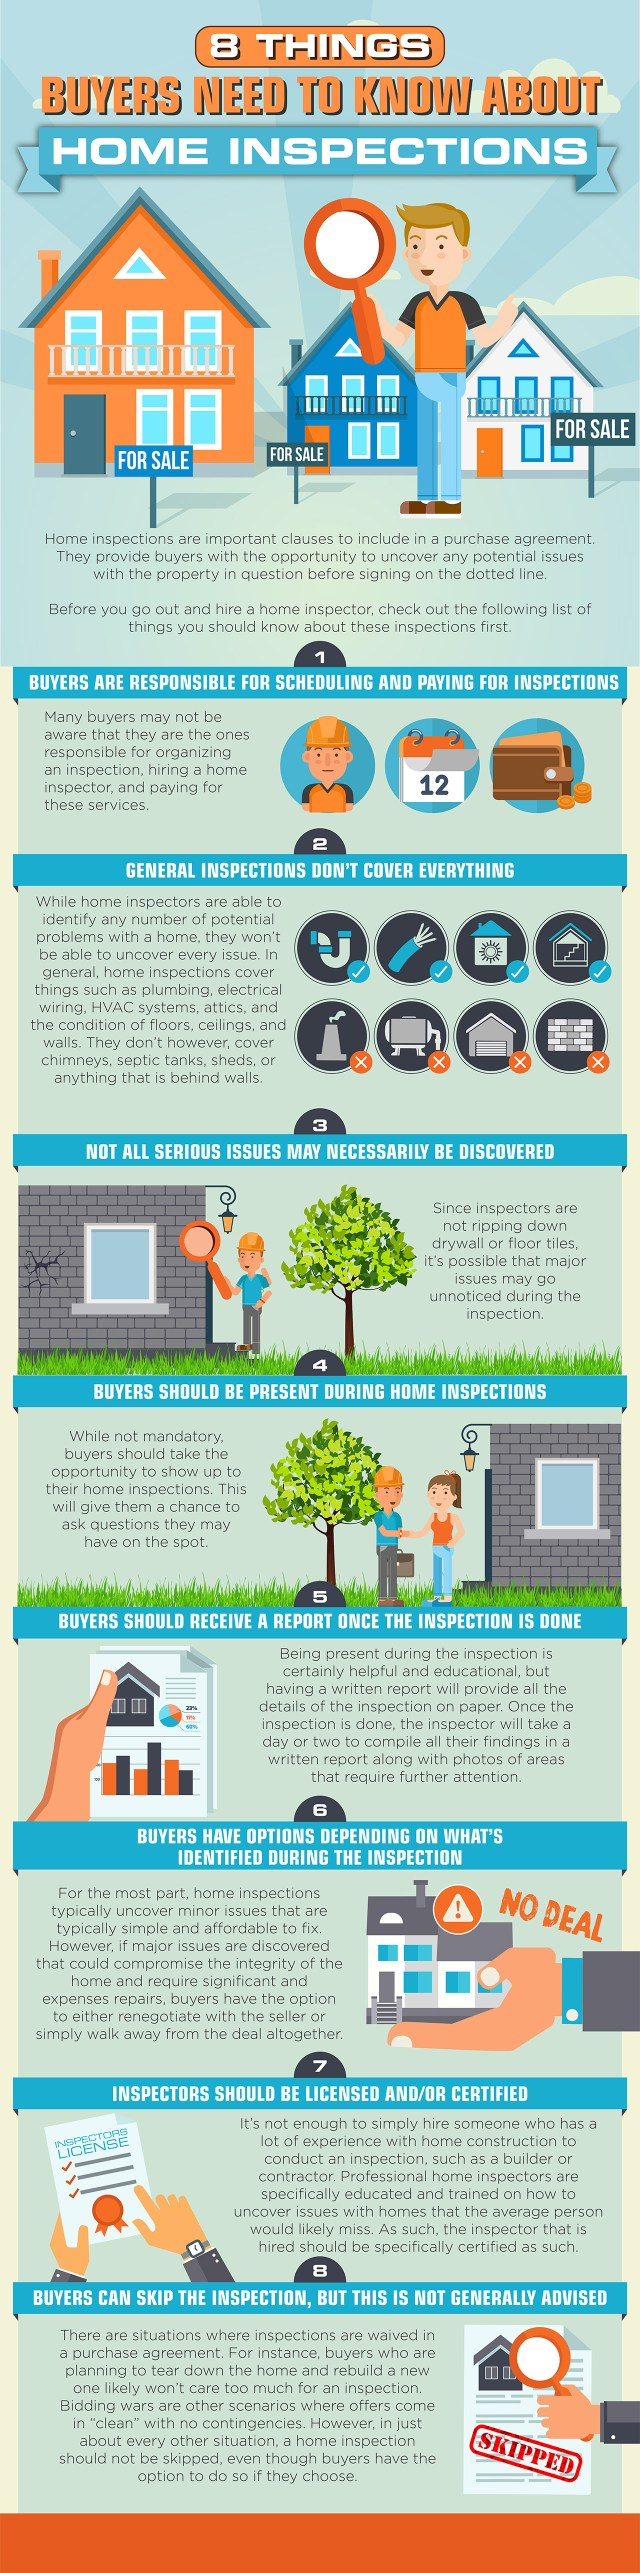 8-things-buyers-need-to-know-about-home-inspections-infographic